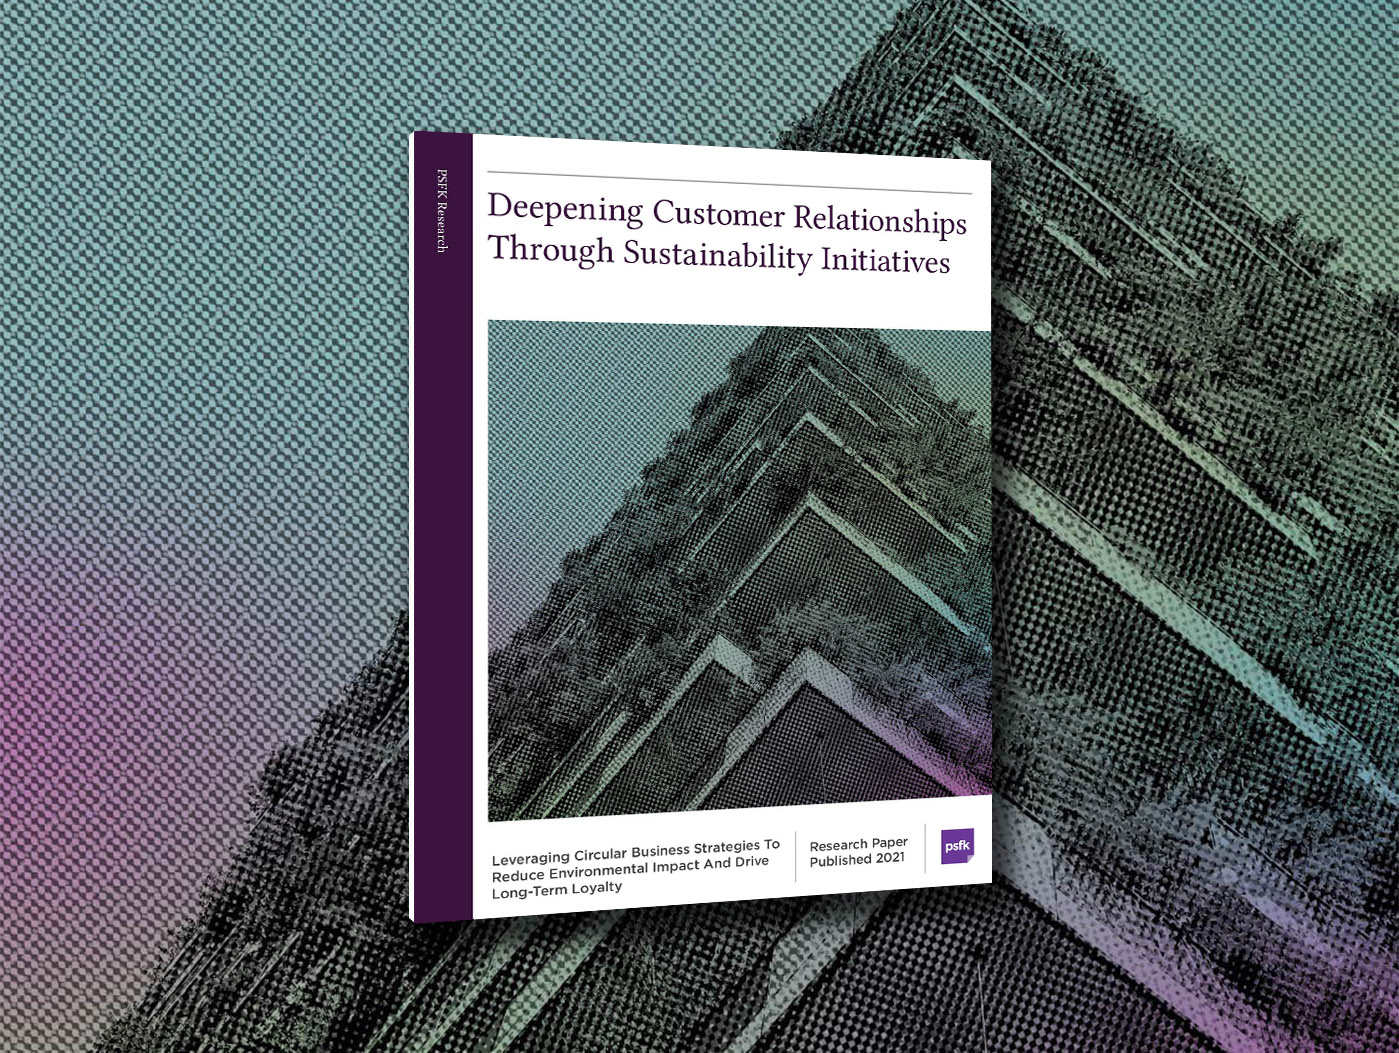 Deepening Customer Relationships Through Sustainability Initiatives